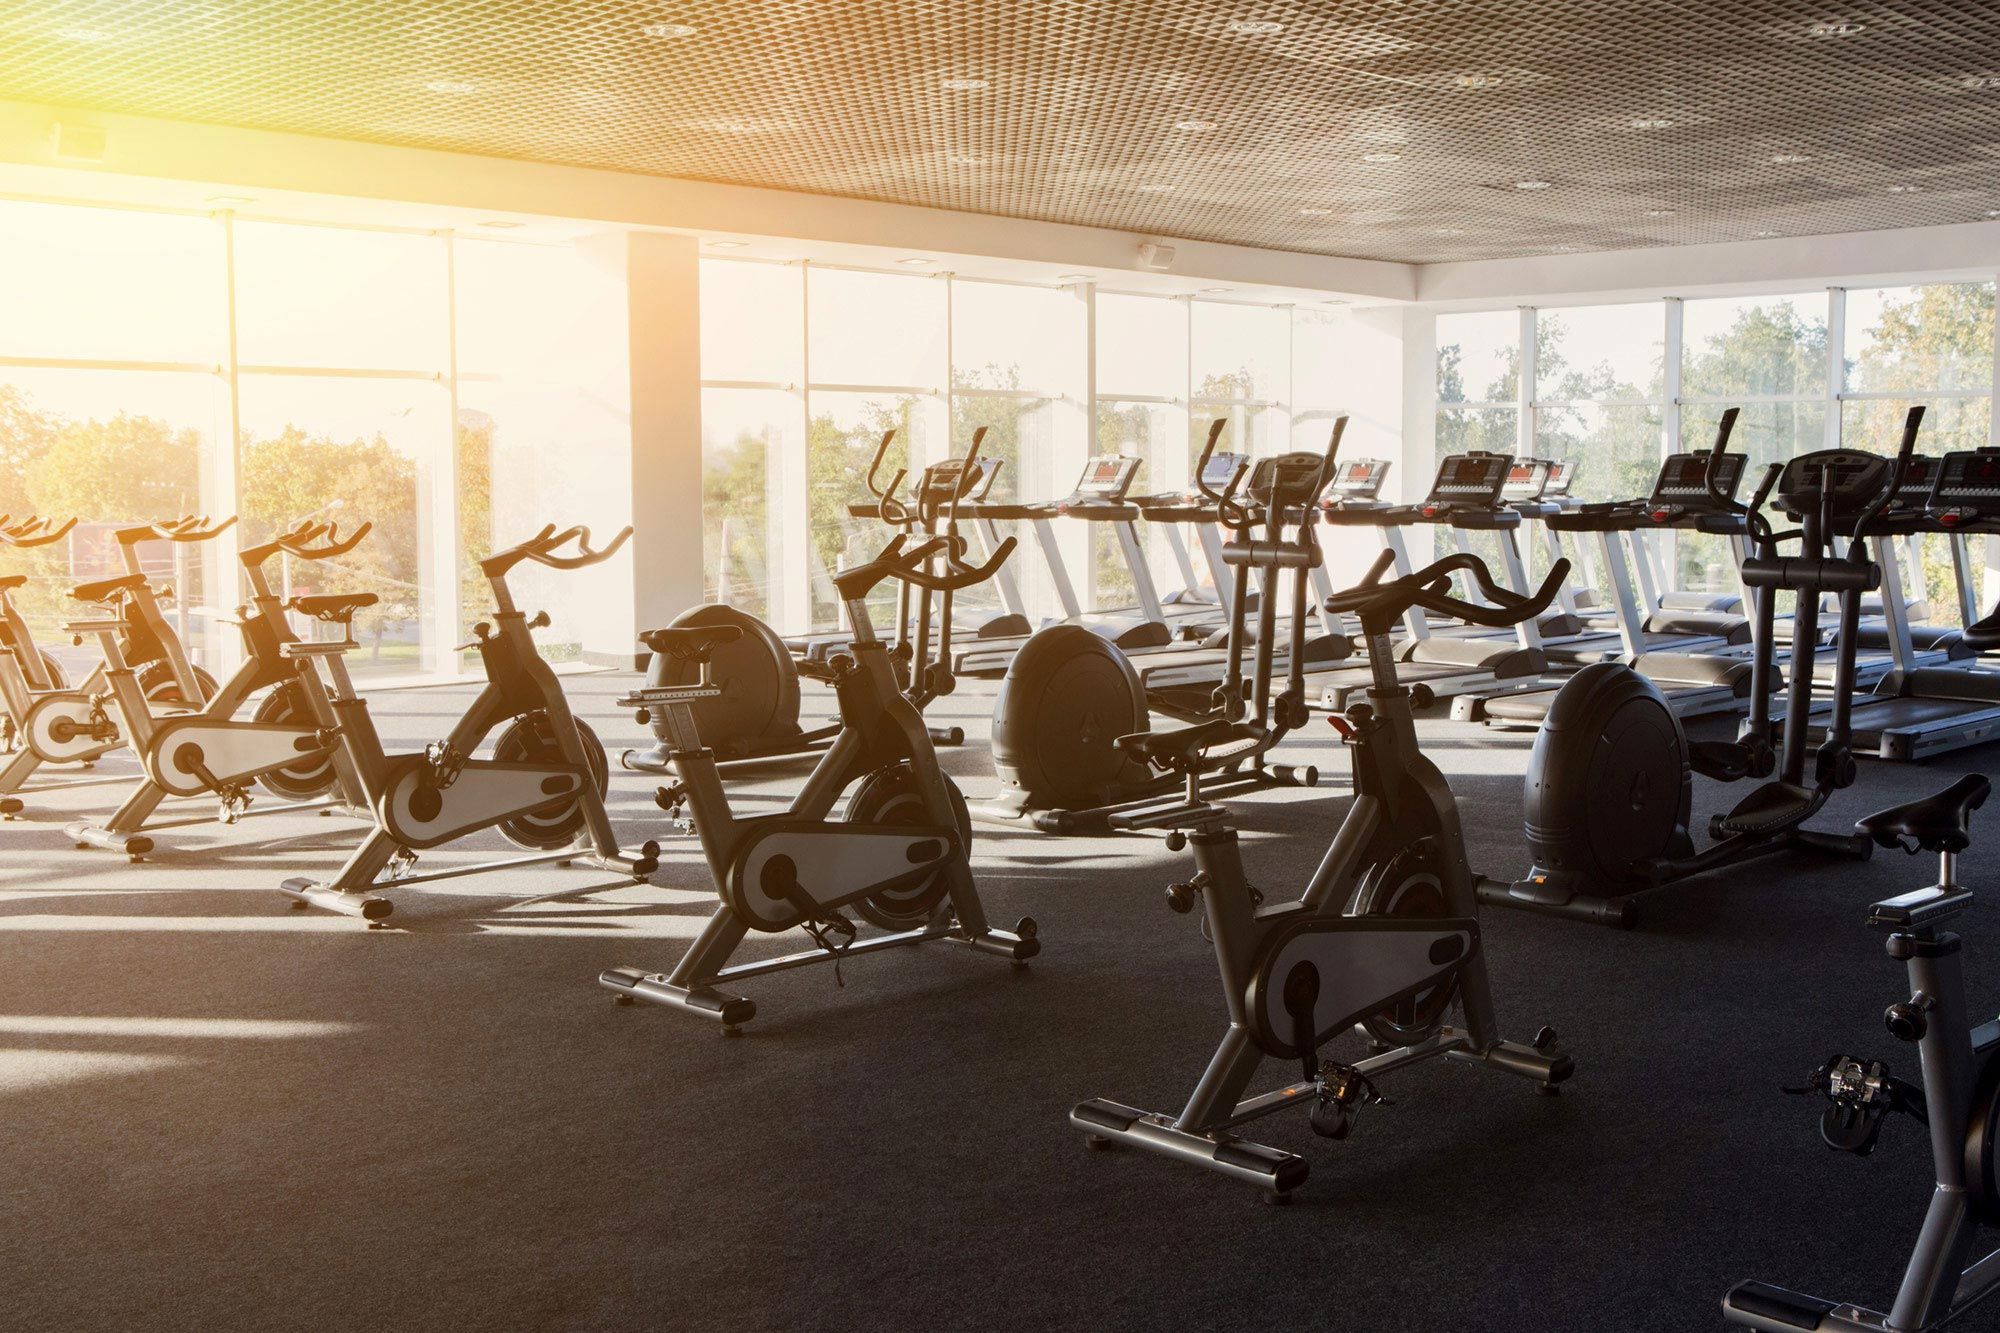 ukactive warns that thousands of gyms and leisure facilities face rent timebomb unless Government extends protection from landlords